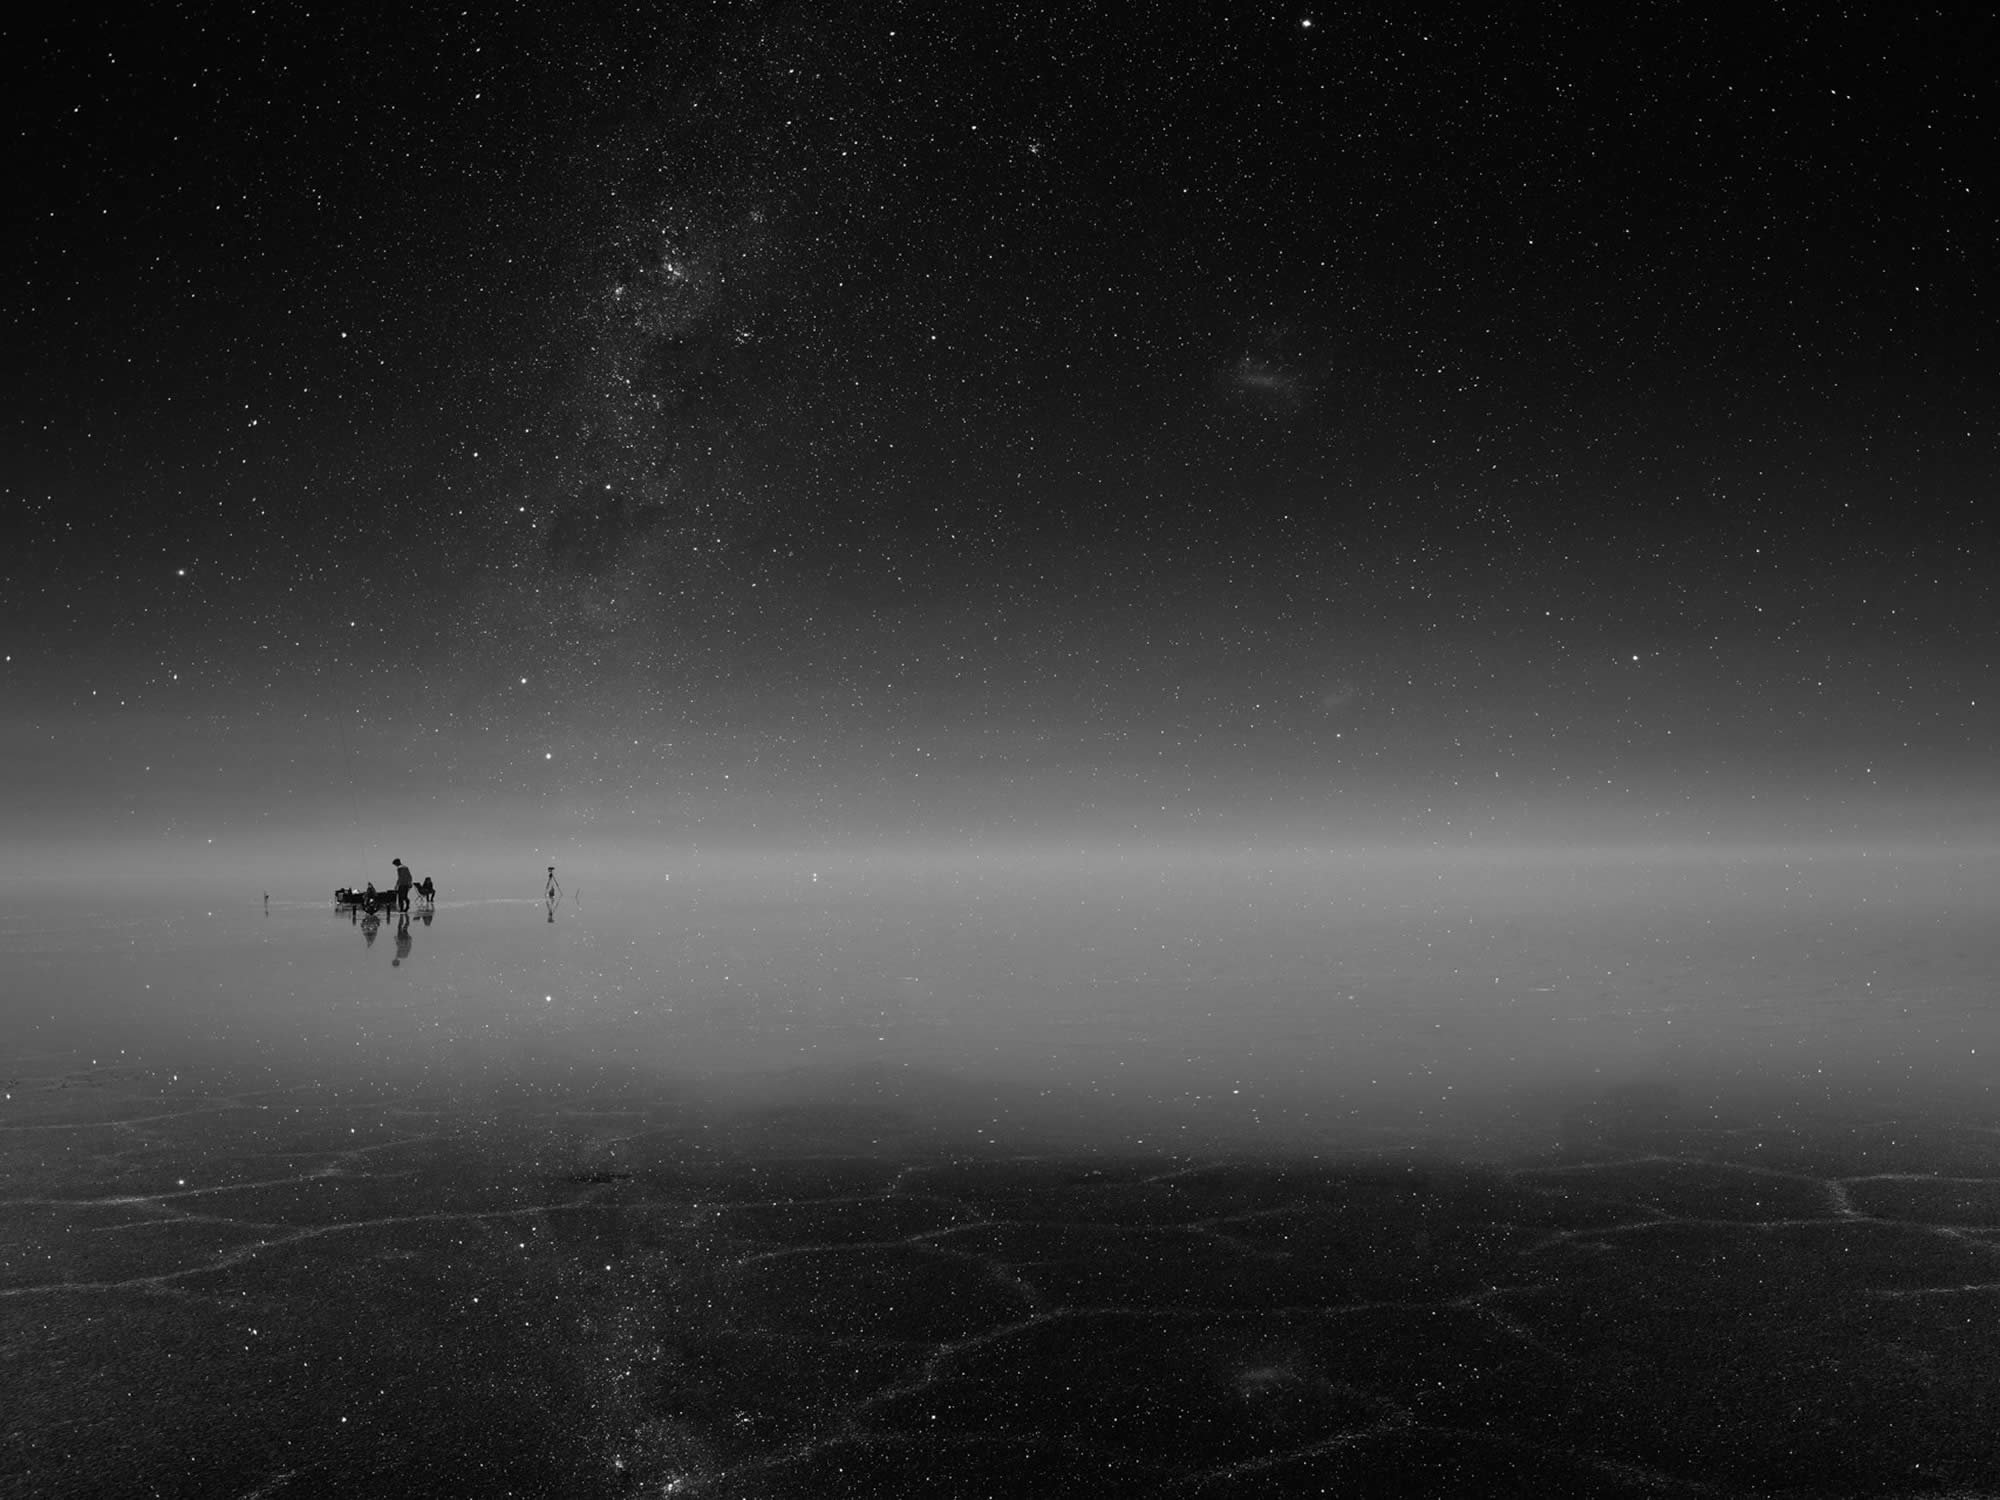 The stars are reflected in the water on the salt flat